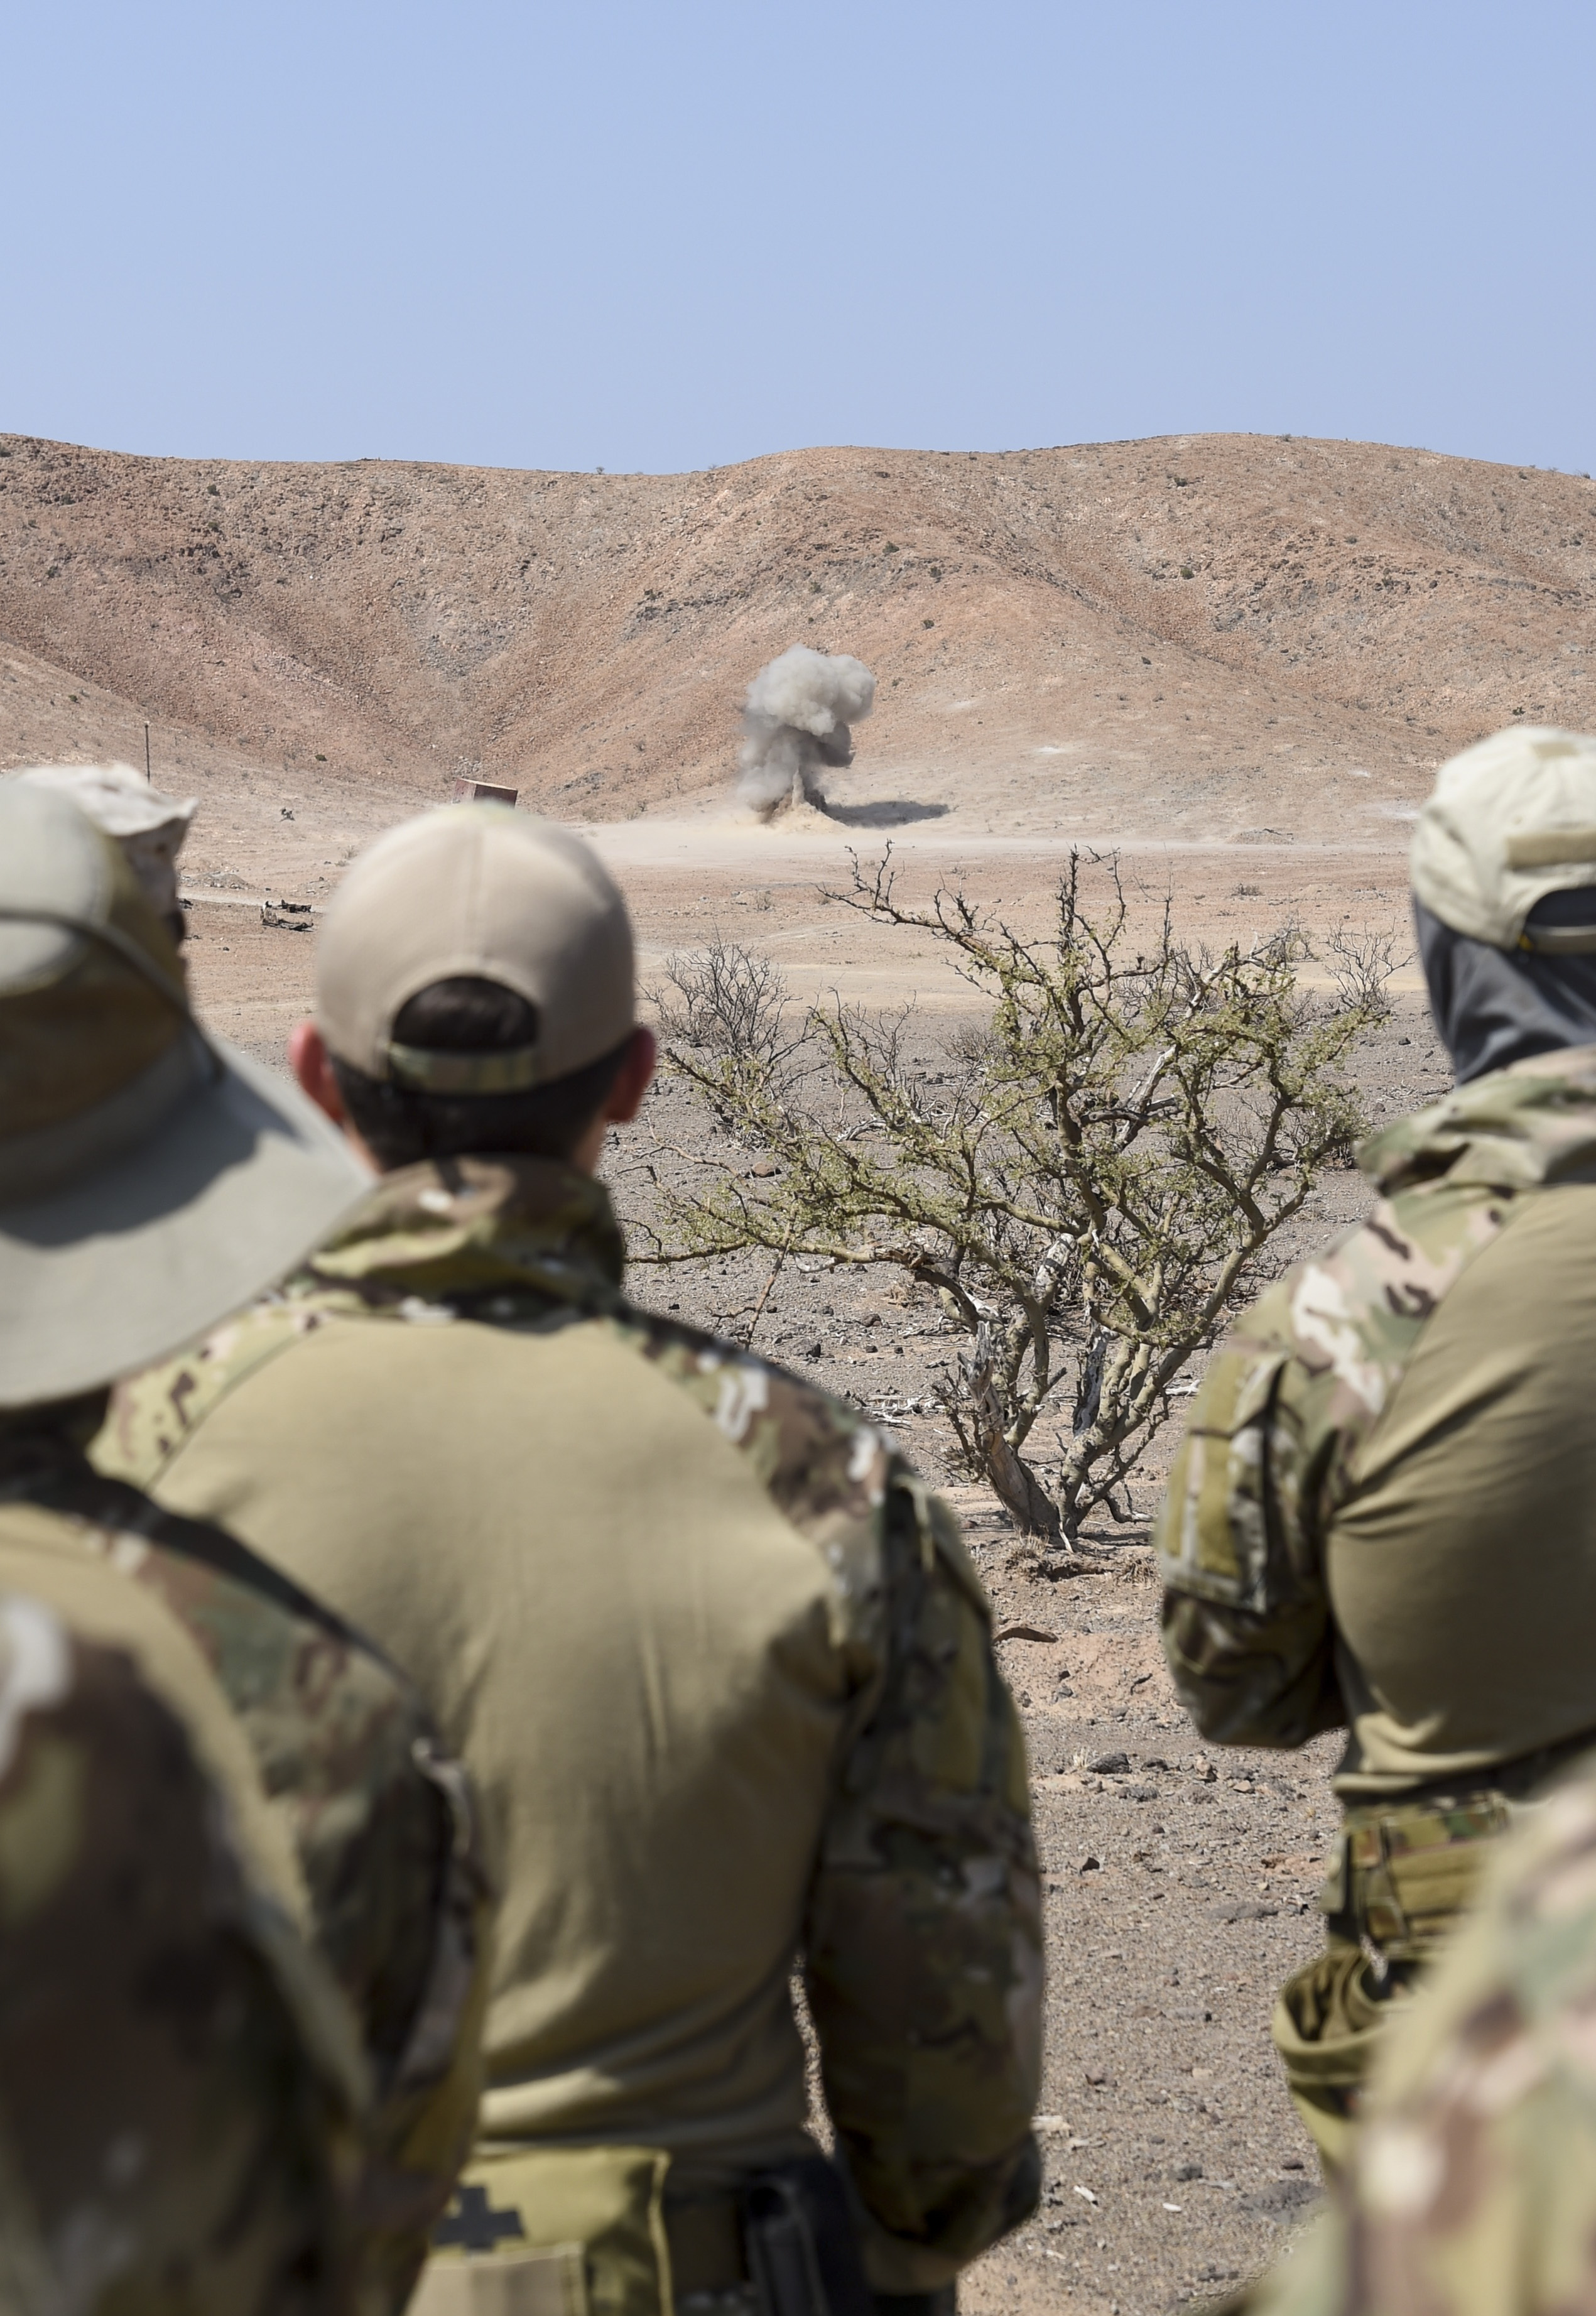 U.S. Navy Sailors with Explosive Ordnance Disposal (EOD) Mobile Unit 6, Task Force Sparta, and a French officer observe the detonation of unexploded ordnance (UXO) encountered during their range sweep from a safe area, Oct. 22, 2016, in Djibouti. During this operation, Navy and French EOD personnel worked bilaterally to safely clear their respective areas of UXO. (U.S. Air Force photo by Staff Sgt. Penny Snoozy)